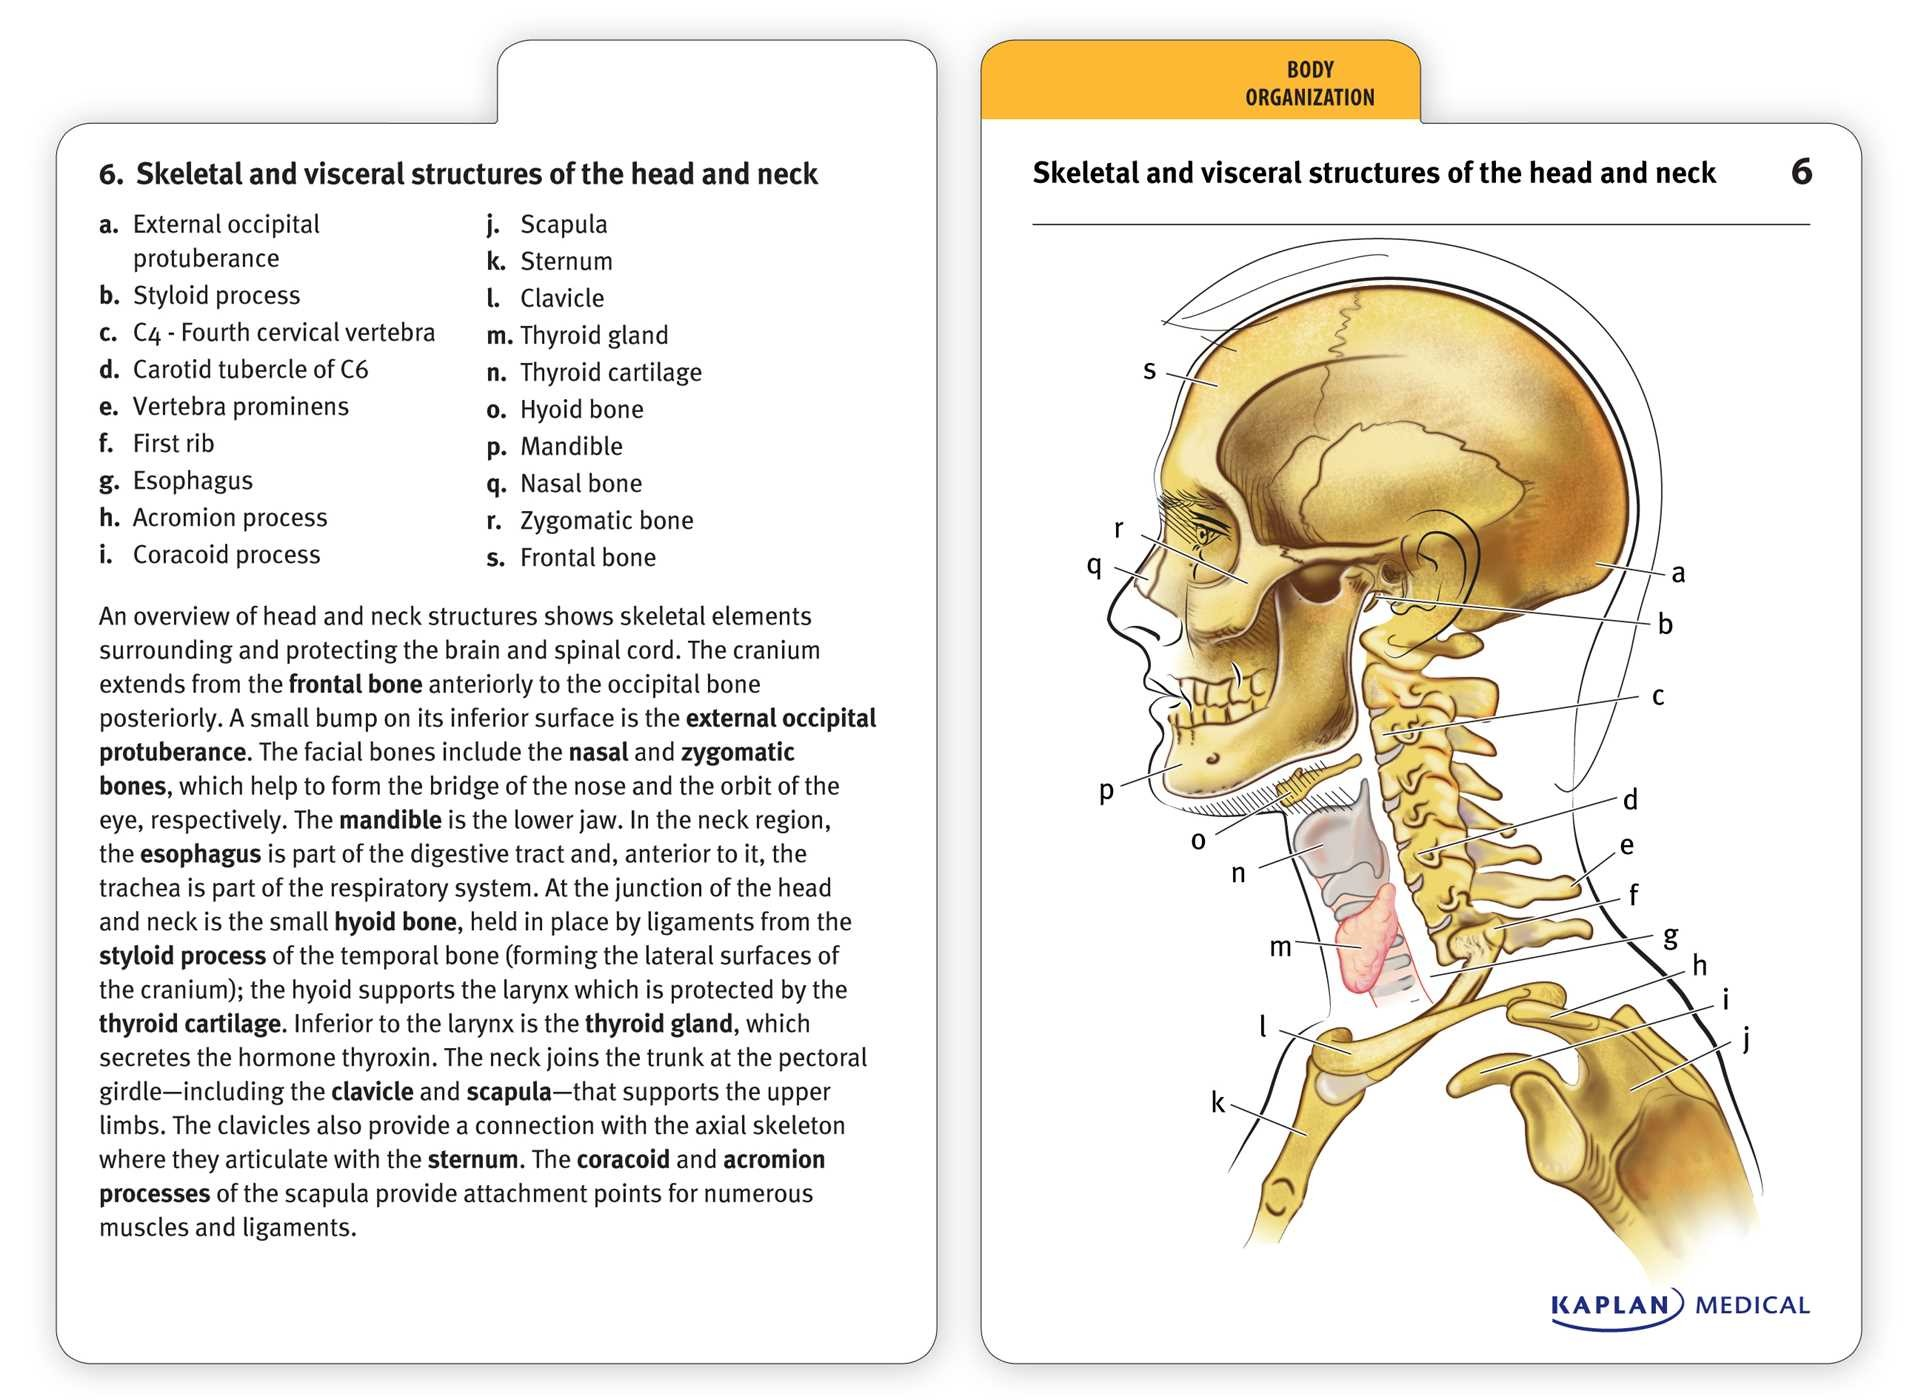 Anatomy flashcards 9781607149842.in03